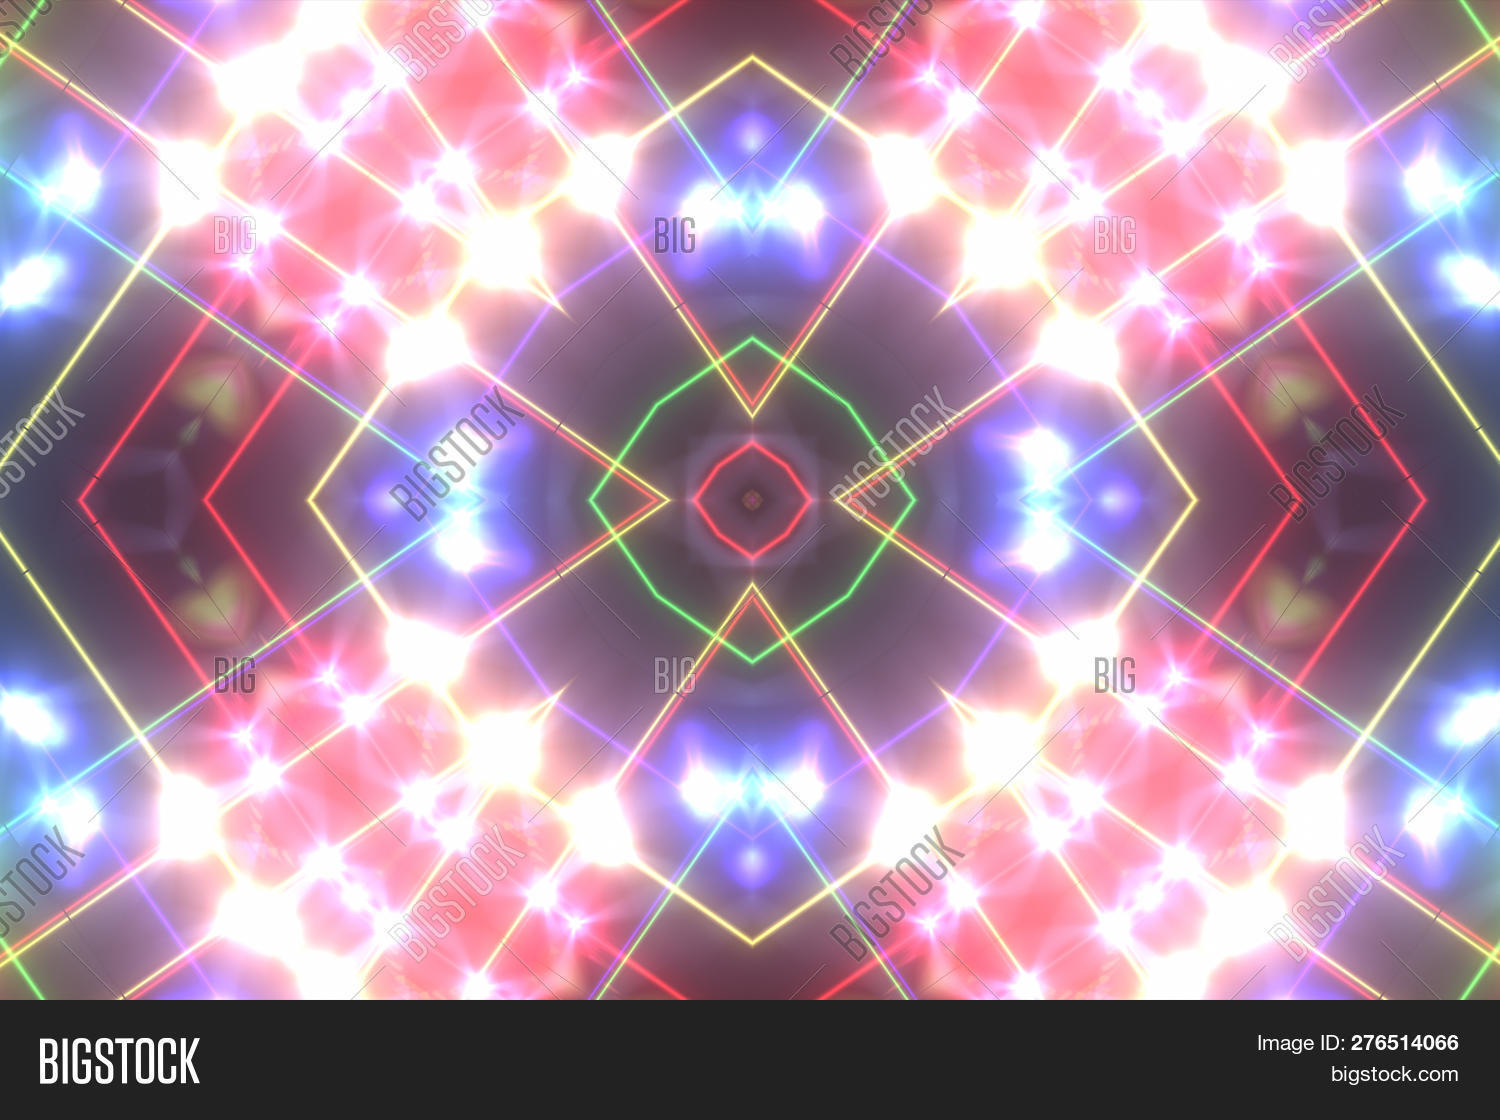 Abstract Disco Image & Photo (Free Trial) | Bigstock